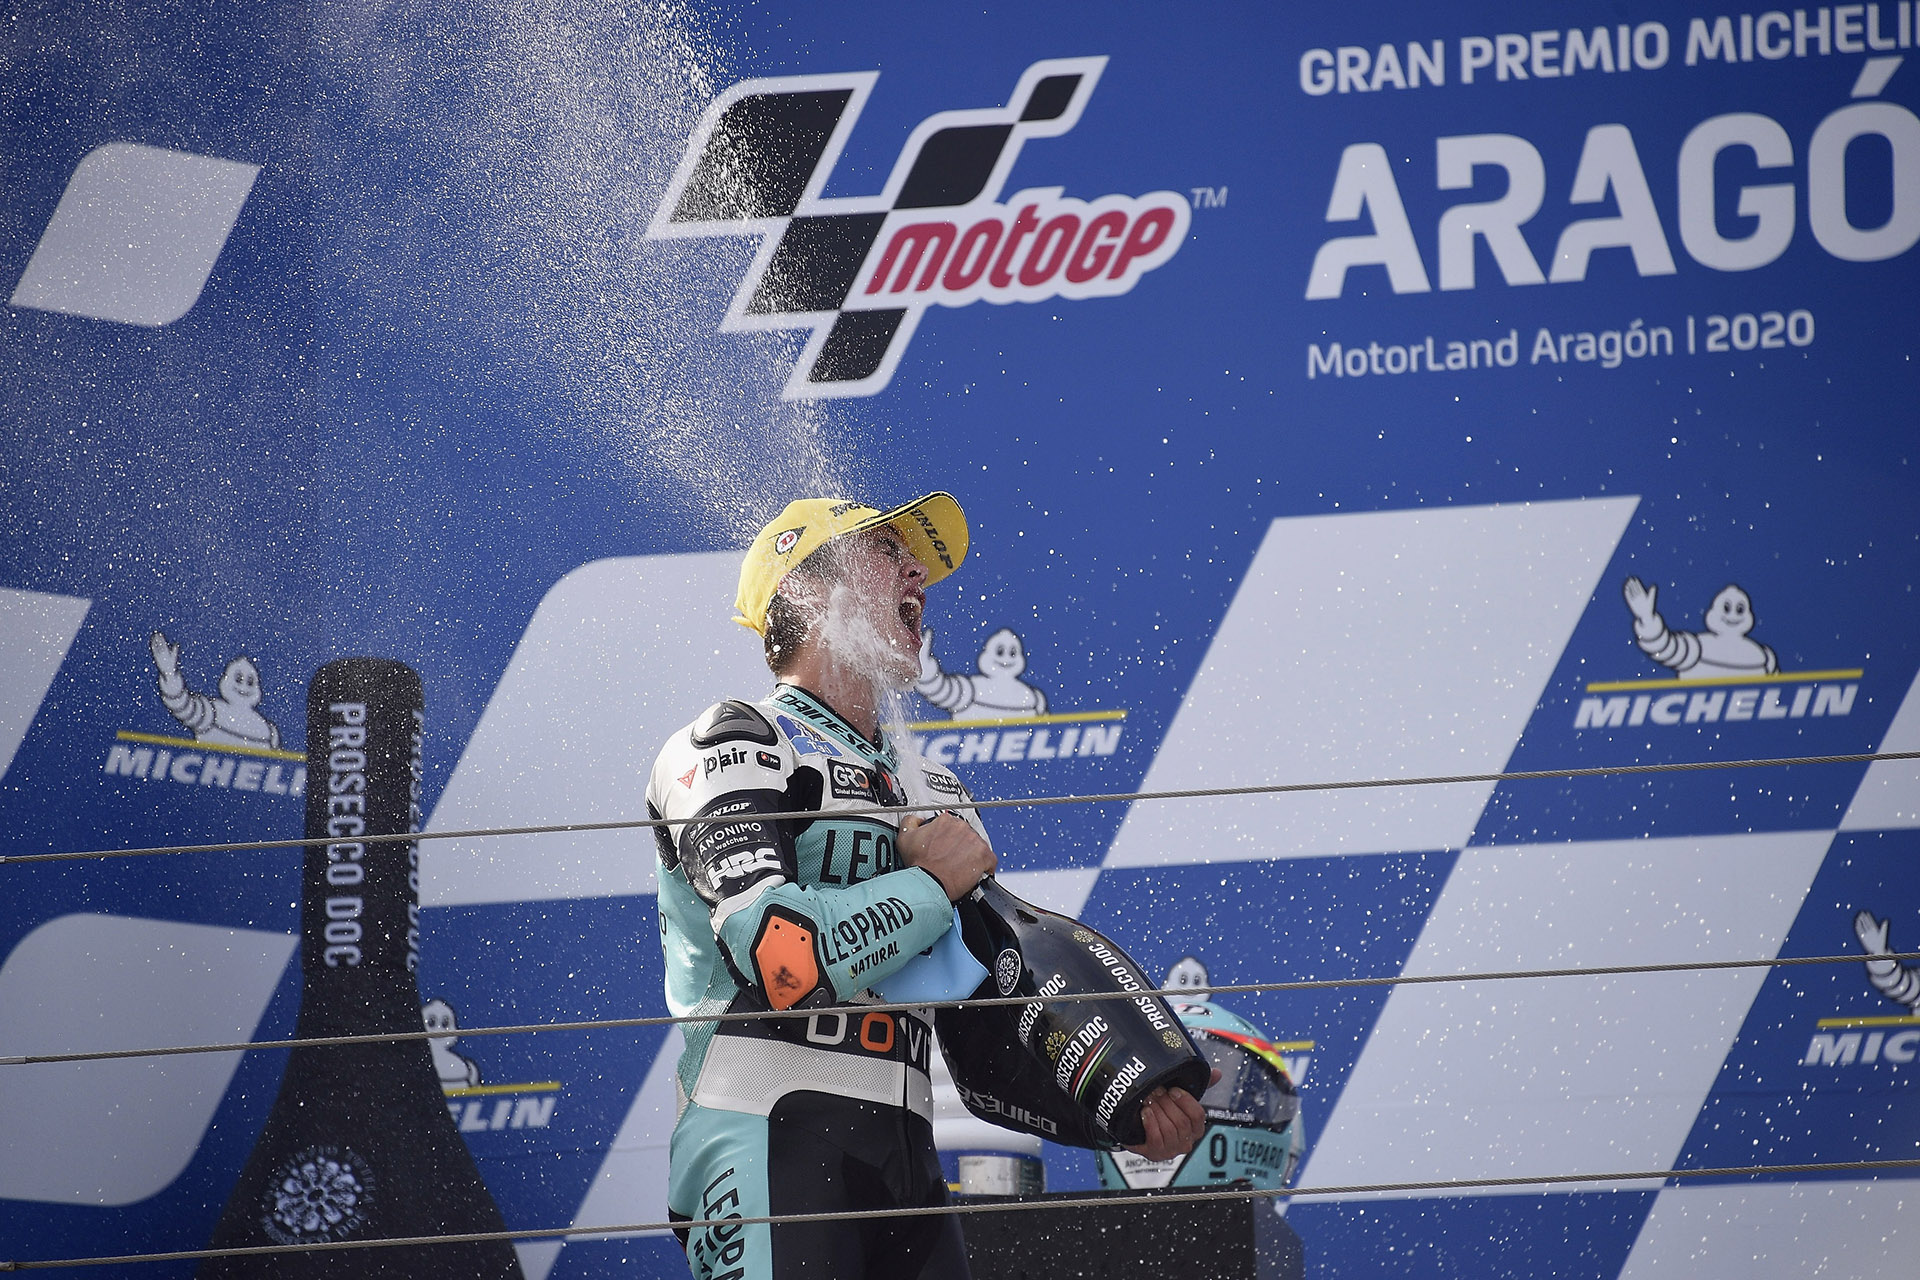 Jaume Masia takes victory in Aragon